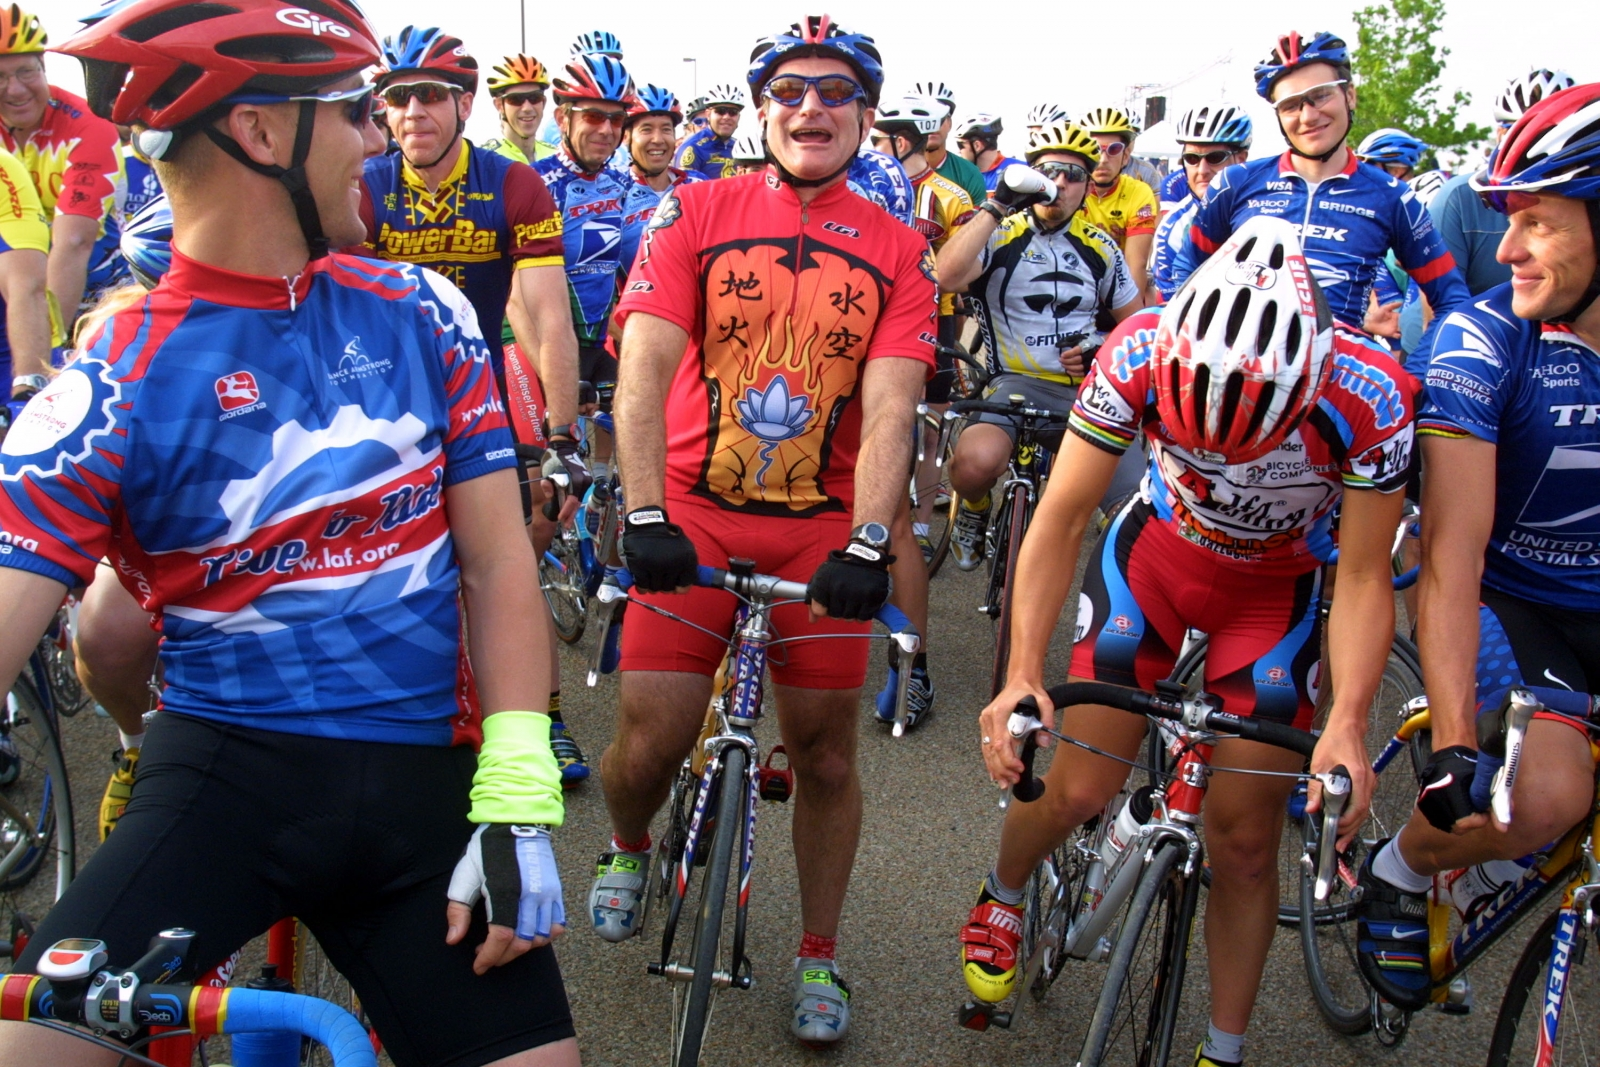 Robin Williams at the Ride for the Roses weekend in Texas, 2001. His friend, Lance Armstrong is on the right. (Getty)